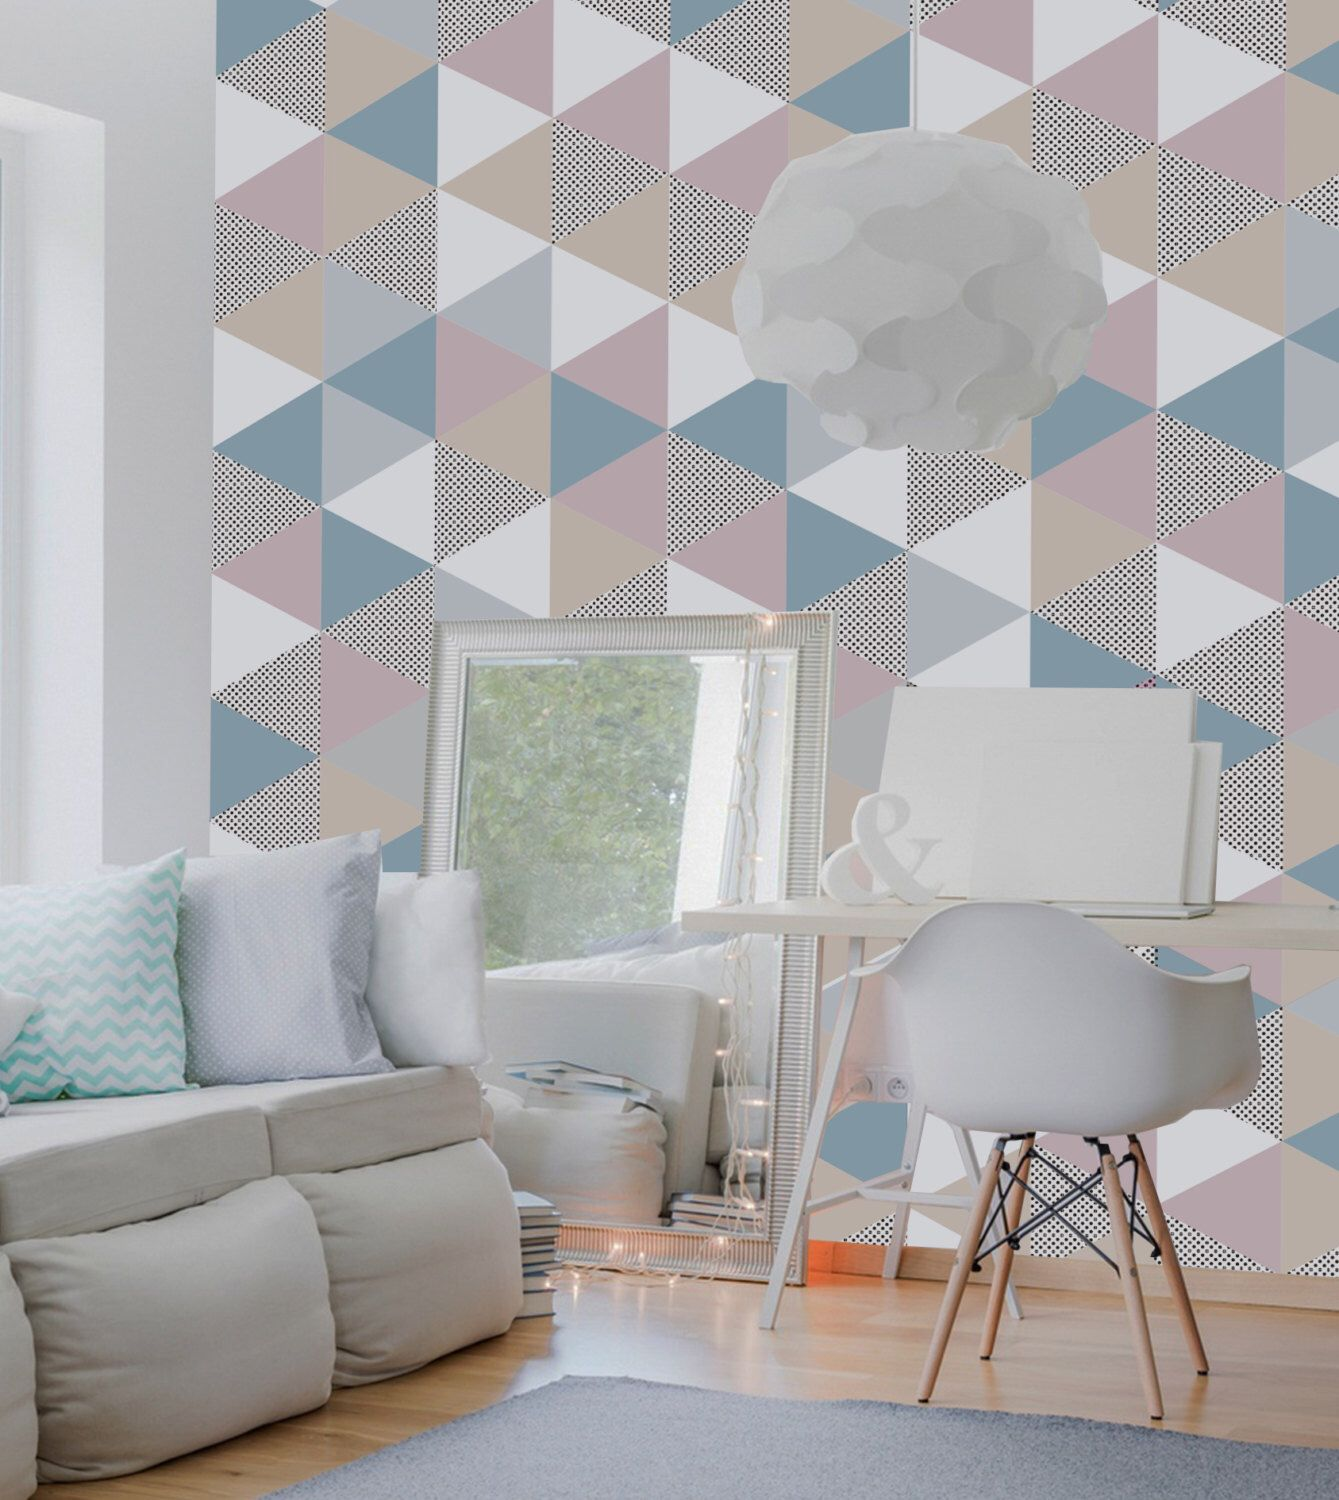 Geometric Wallpaper Removable Self Adhesive Pink And Blue With